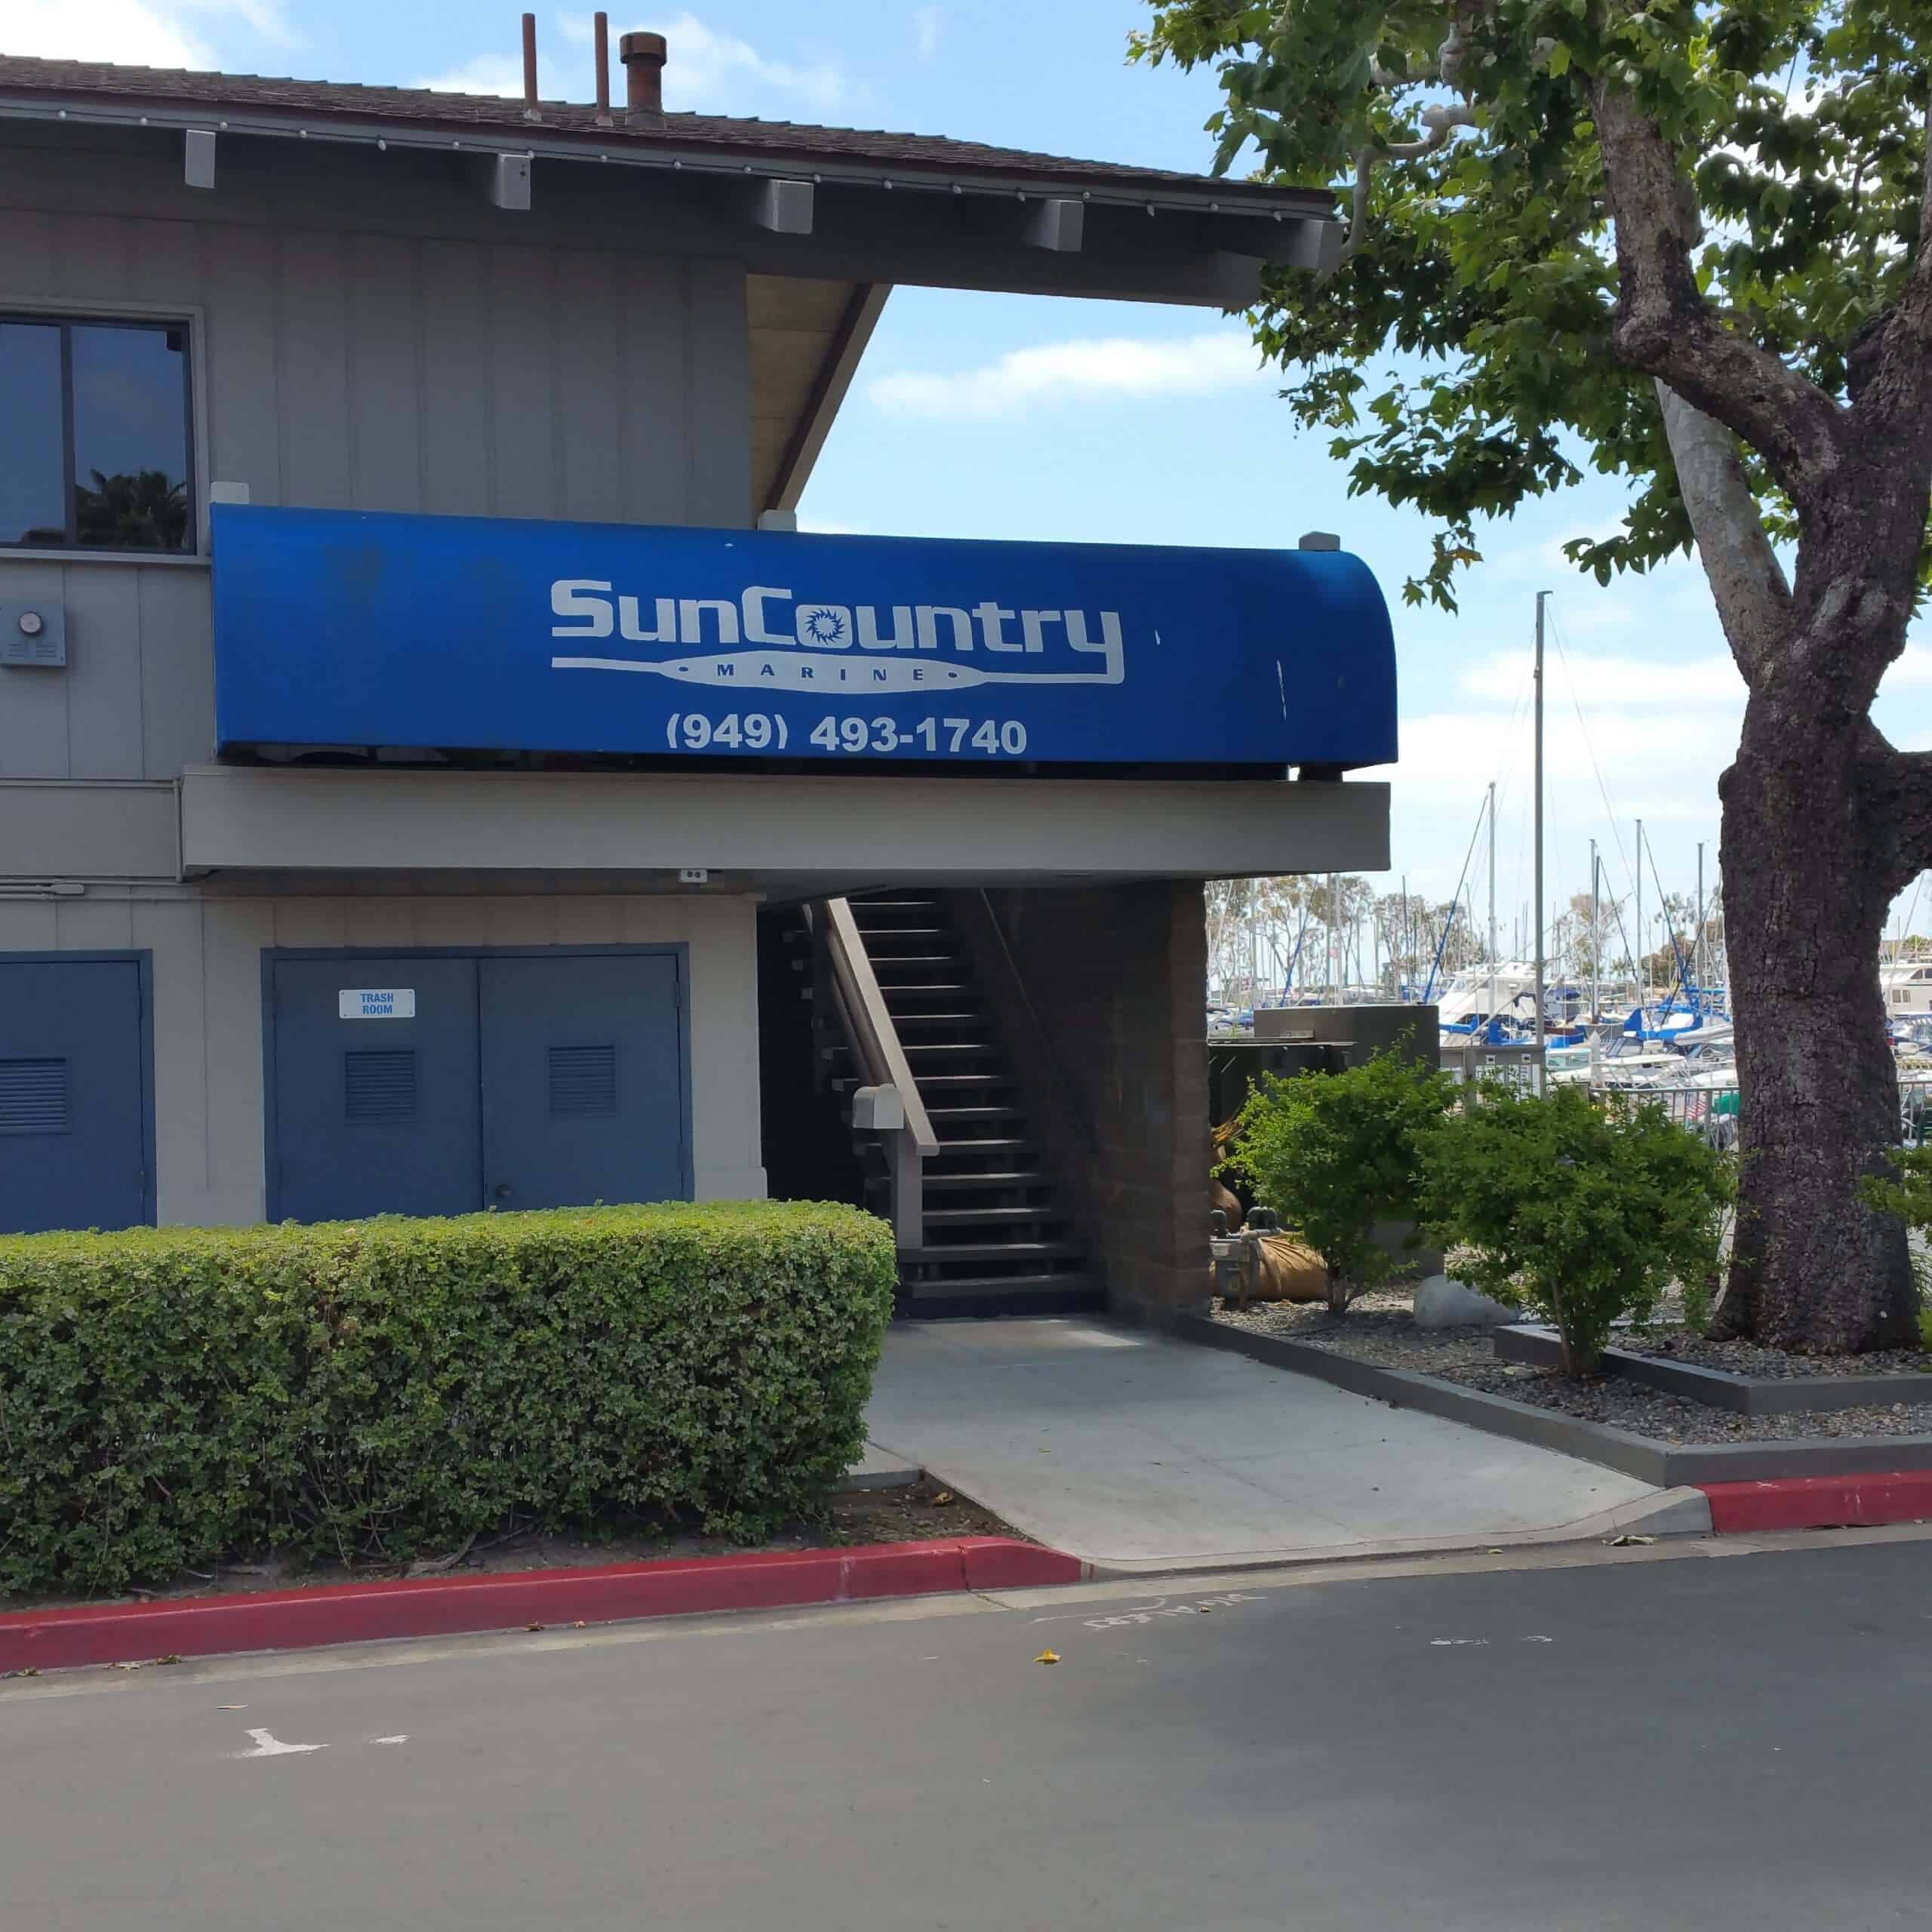 https://suncountrymarinegroup.com/wp-content/uploads/2020/06/sun_country_coastal-dana_point-storefront-scaled.jpg